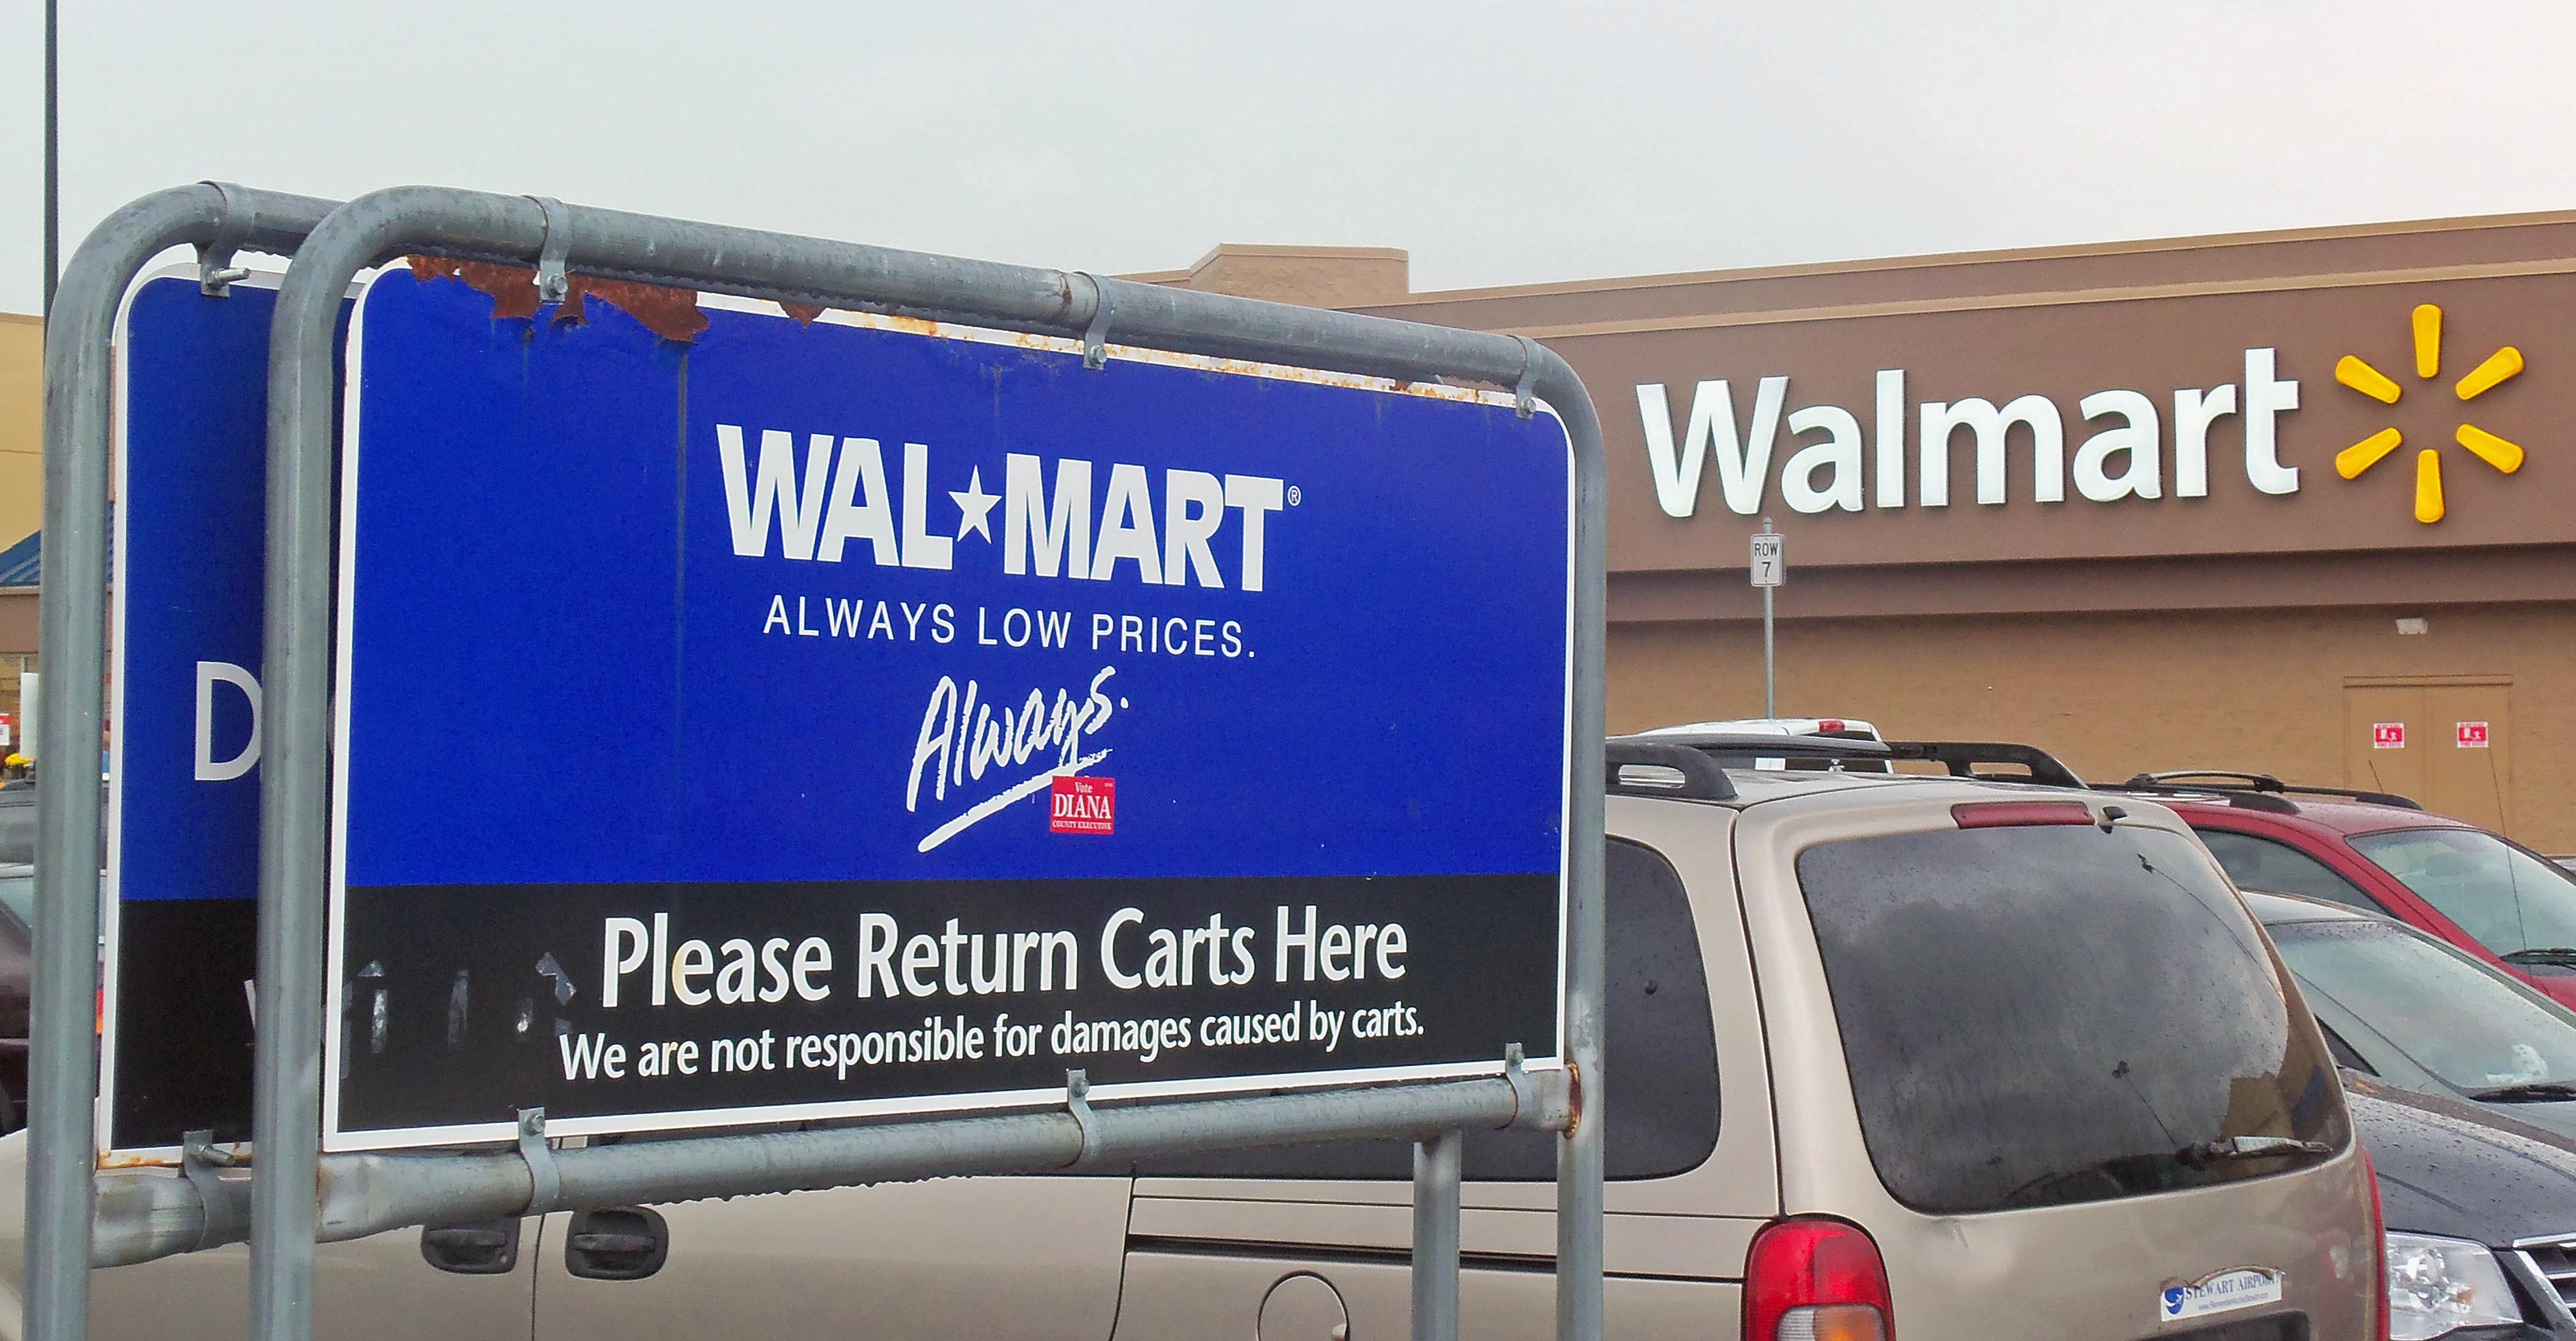 File:Walmart logos old and new.jpg - Wikimedia Commons